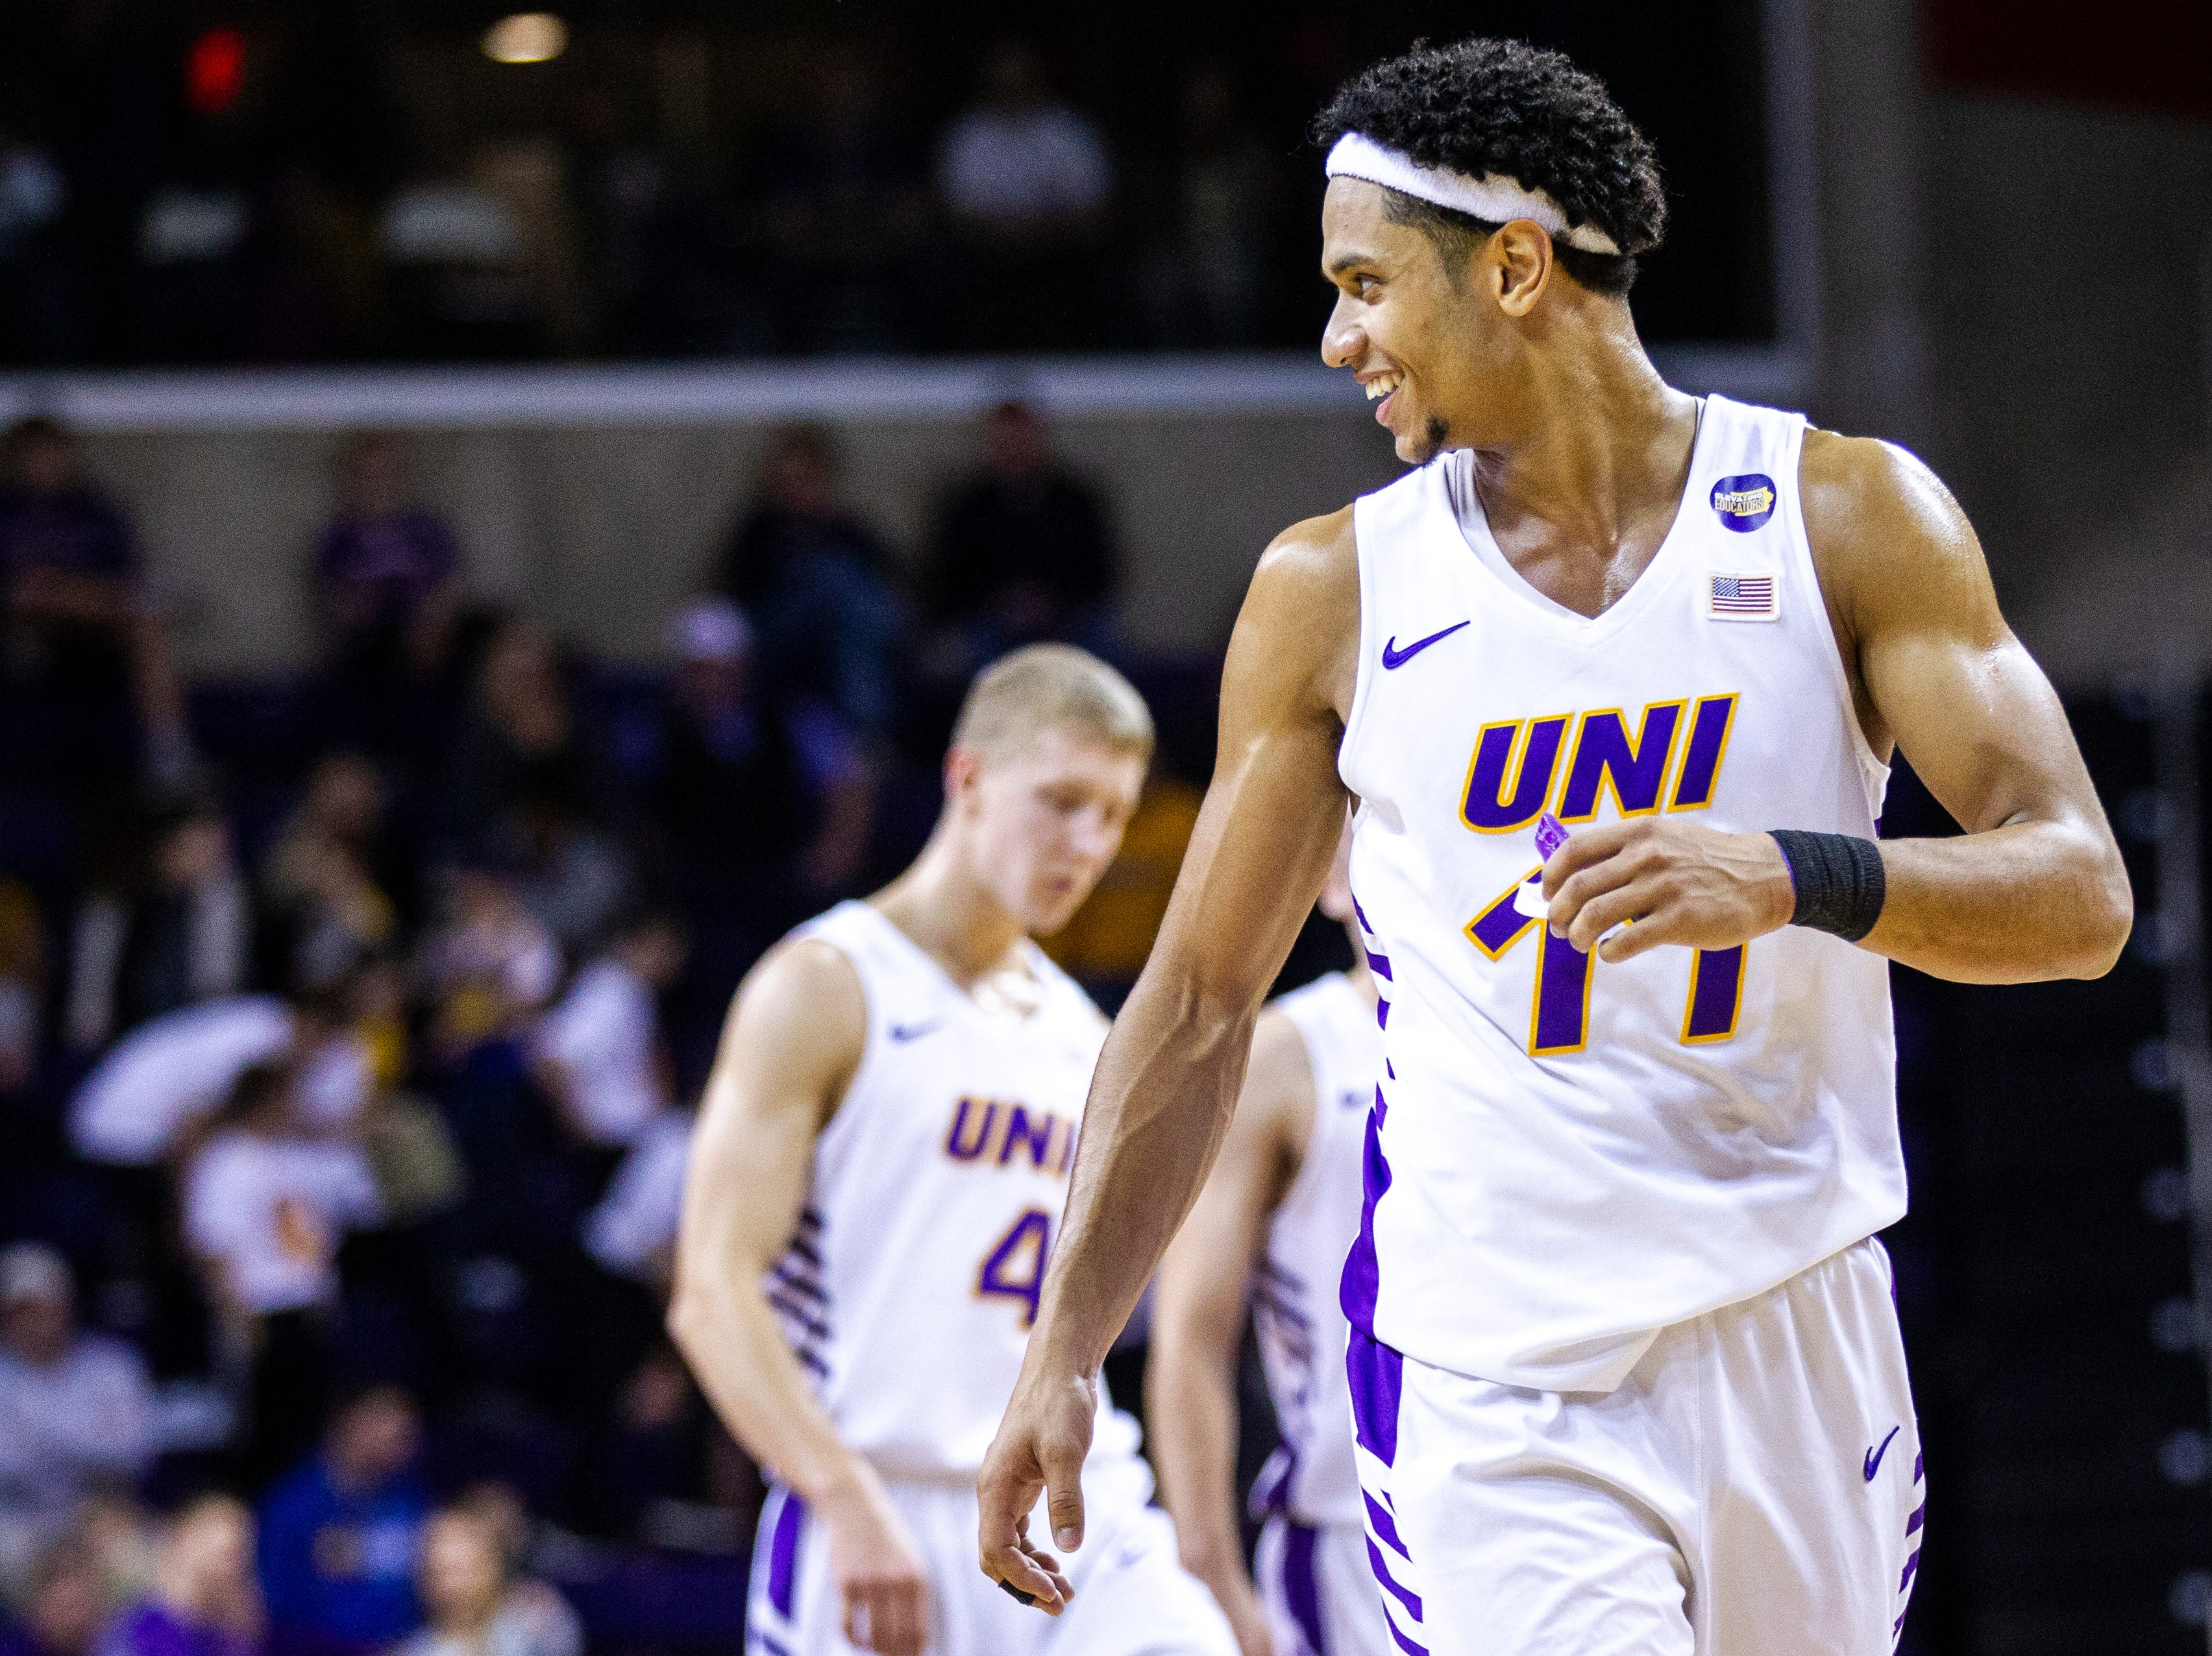 Northern Iowa guard Trae Berhow (11) smiles while checking into a game during a NCAA Missouri Valley Conference men's basketball game on Saturday, Jan. 5, 2019, at the McLeod Center in Cedar Falls, Iowa.